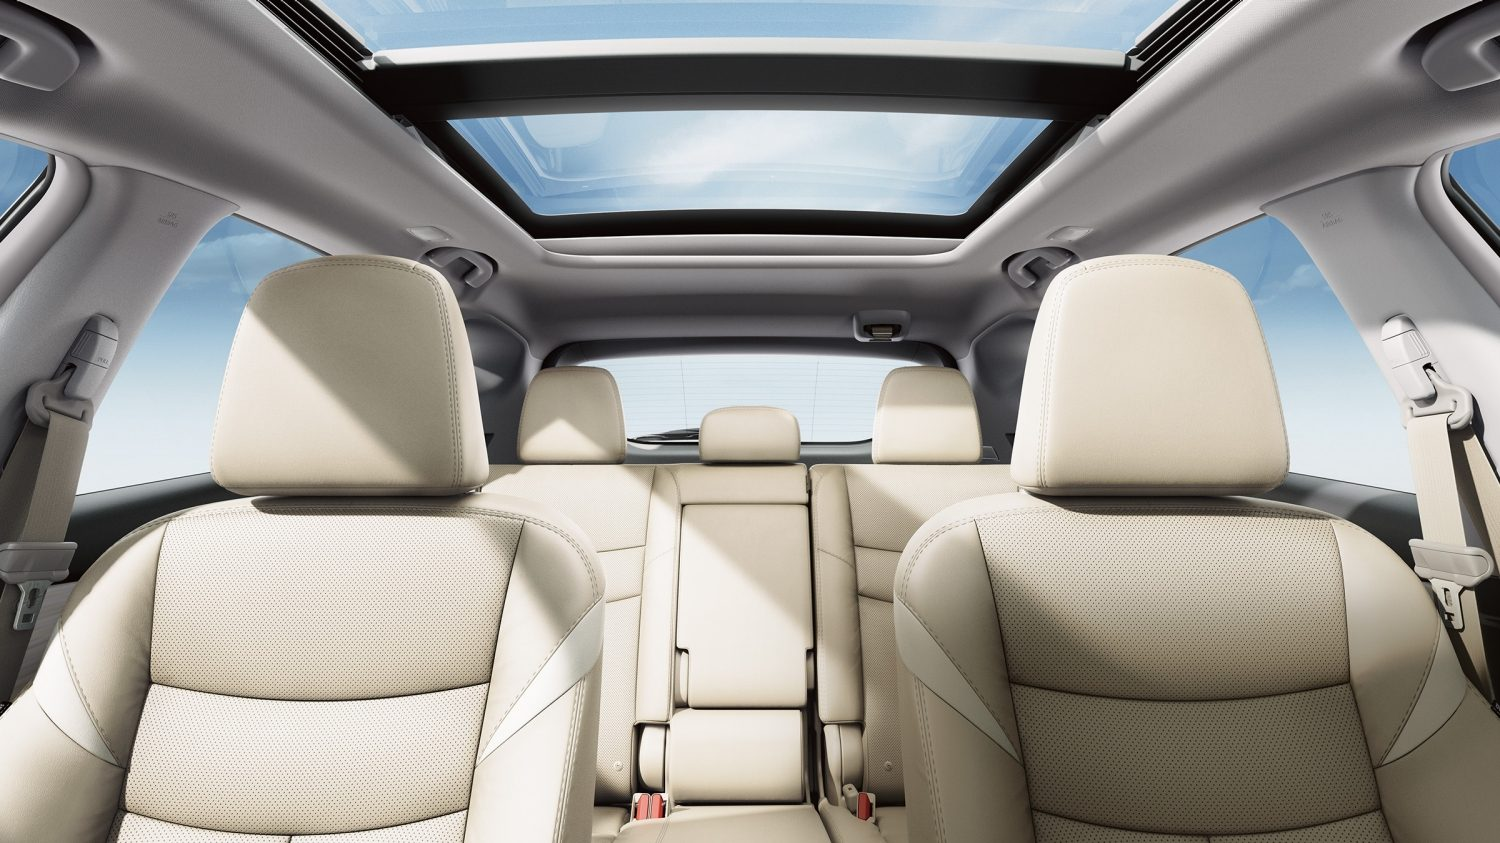 Moonroof de Nissan Murano